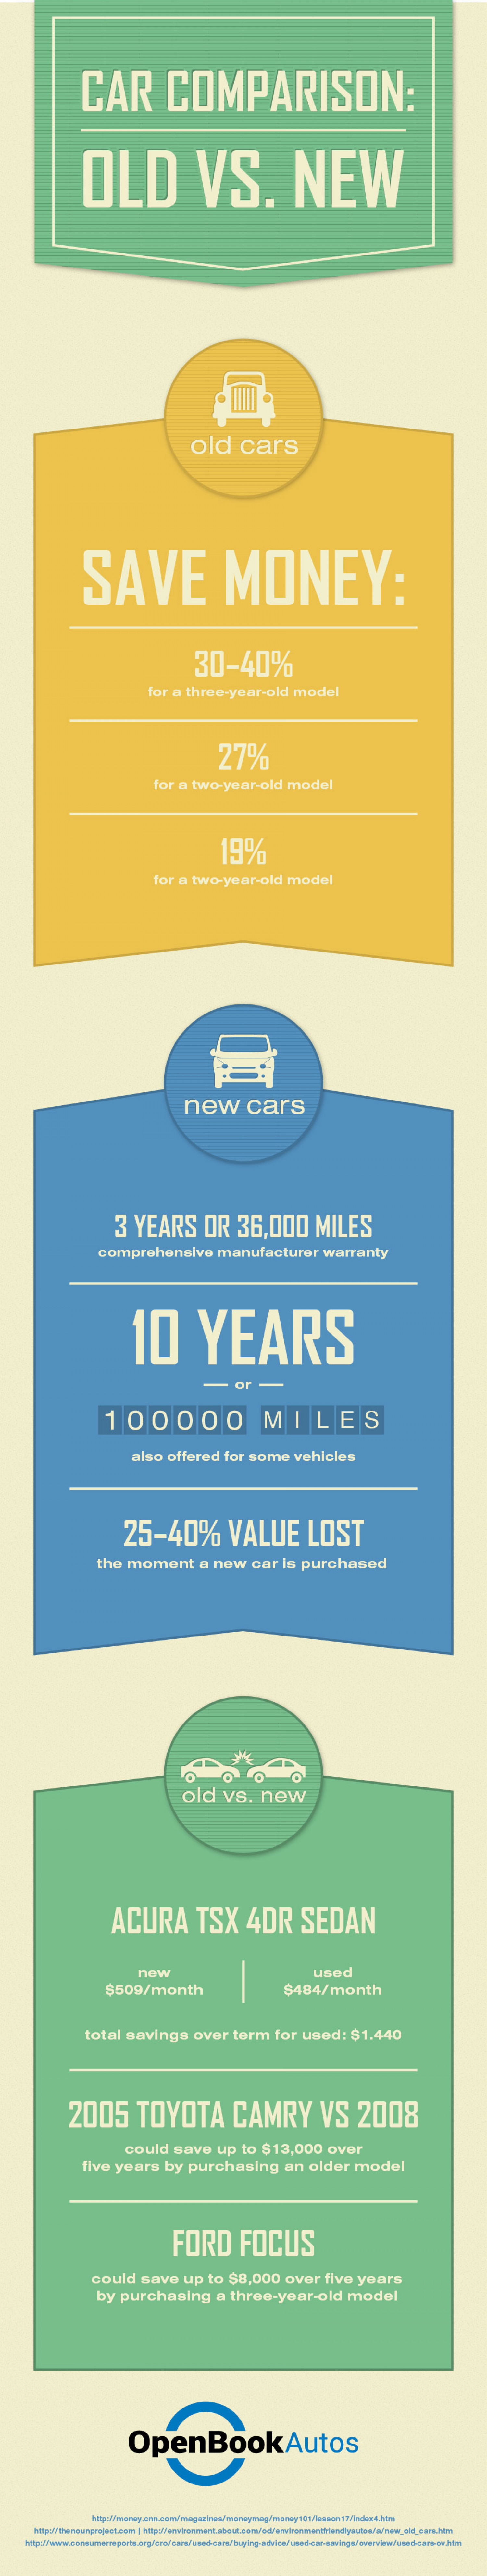 Car Comprarison: Old Vs. New Infographic